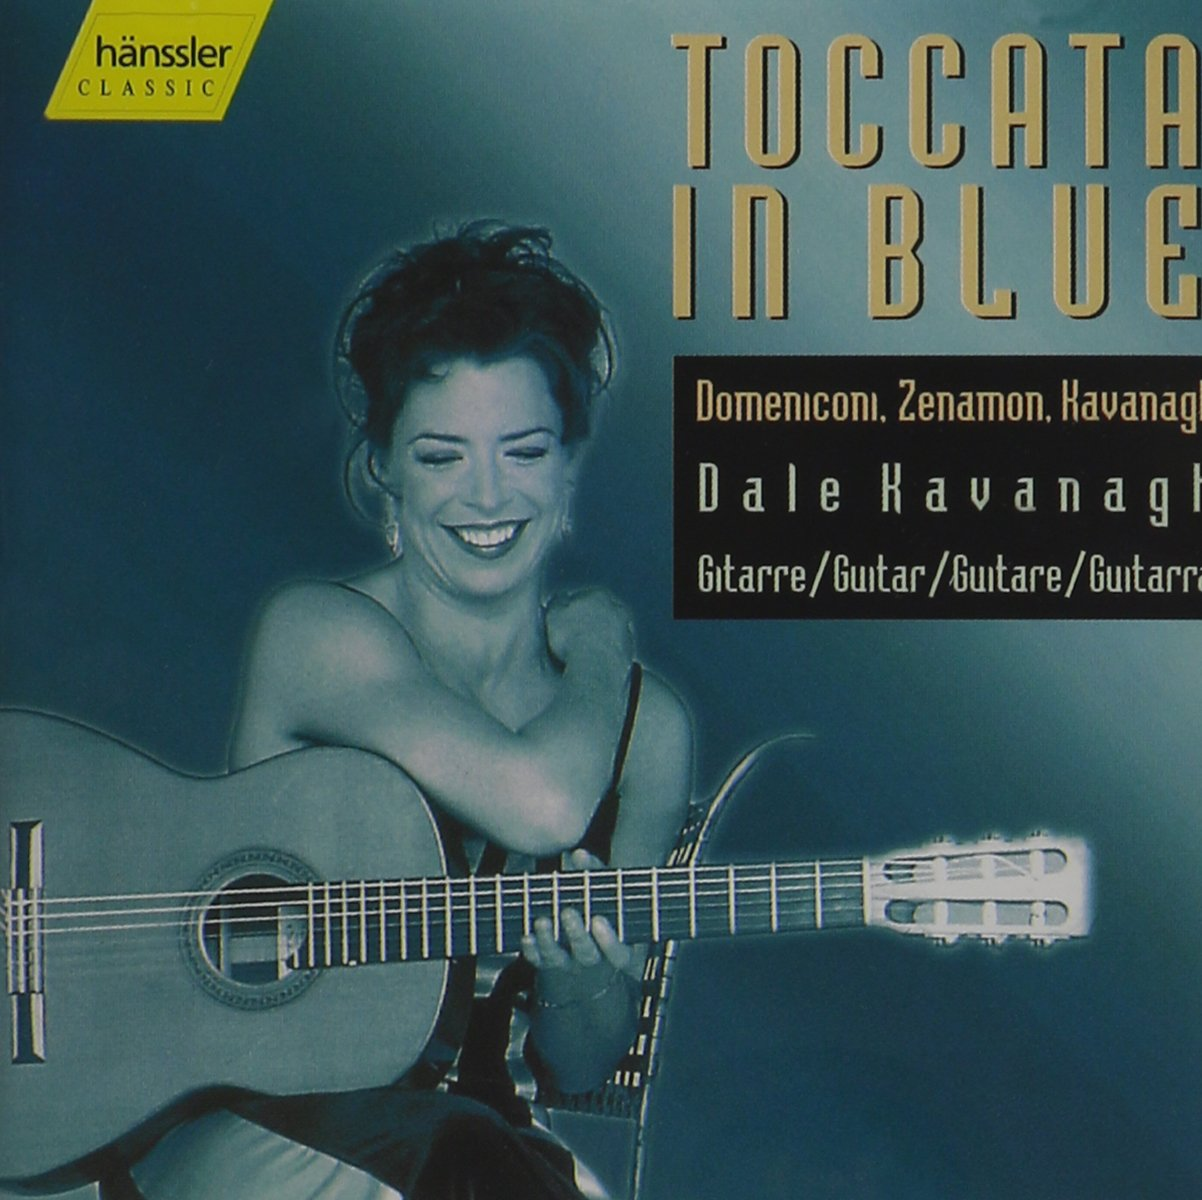 Toccata in Blue - Dale Kavanagh Dome guitar Ranking TOP13 Carlo plays works Indianapolis Mall by